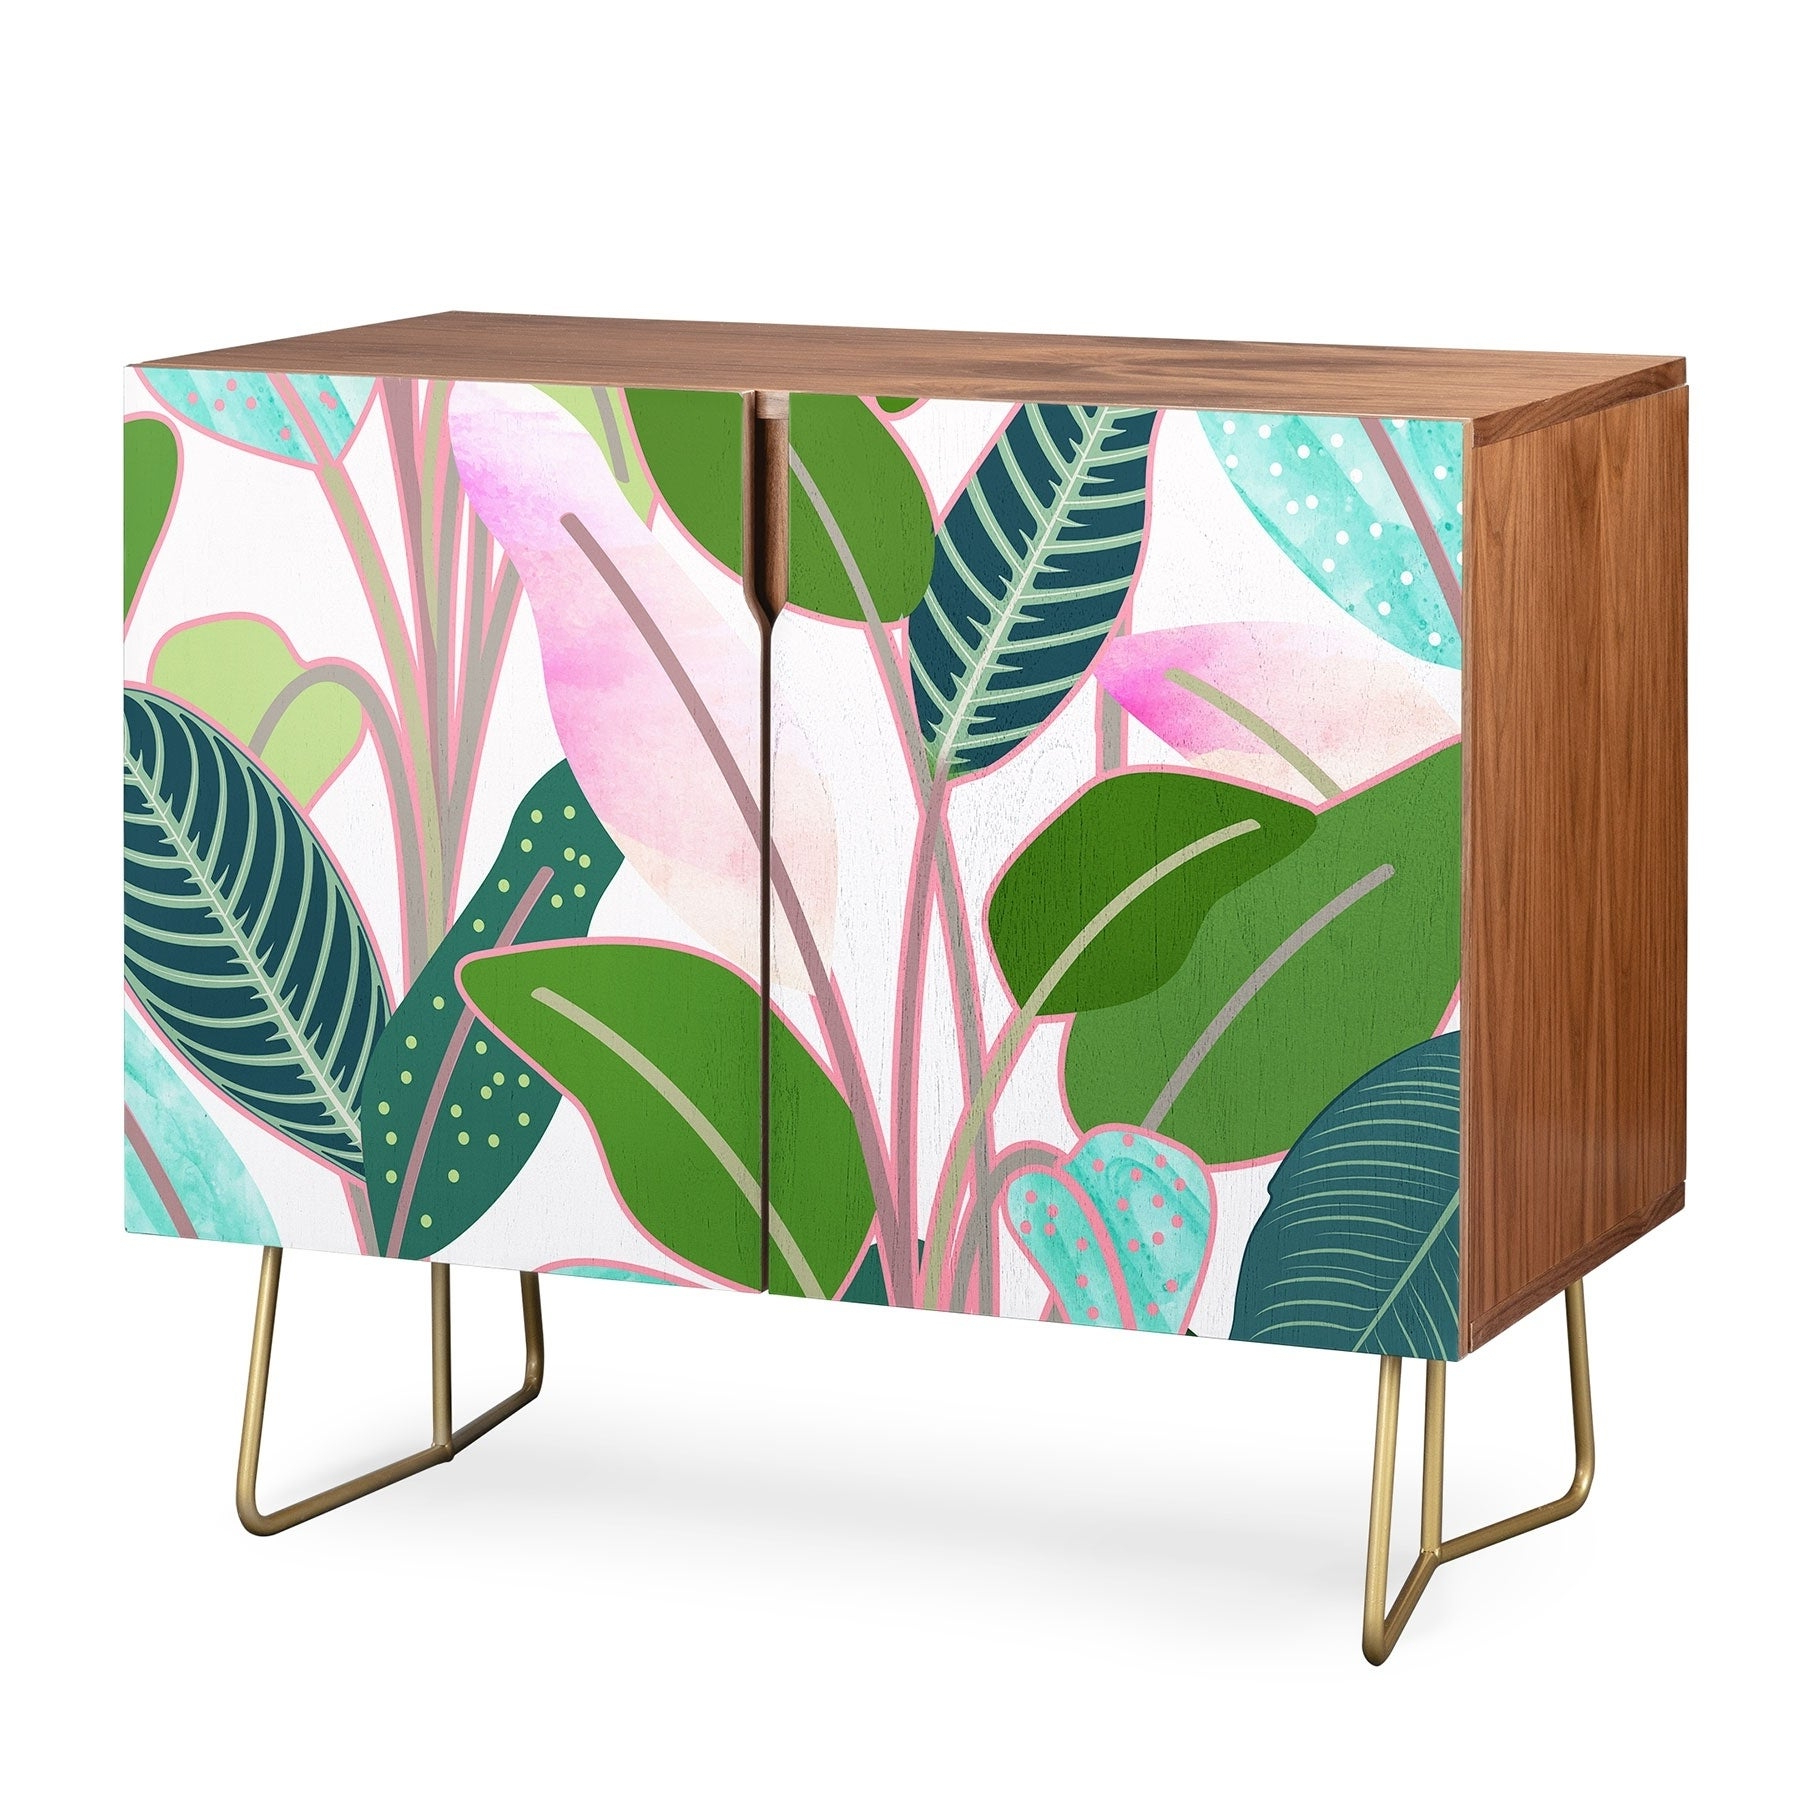 Deny Designs Colorful Leaves Credenza (Birch Or Walnut, 2 Leg Options) Pertaining To Colorful Leaves Credenzas (View 10 of 20)